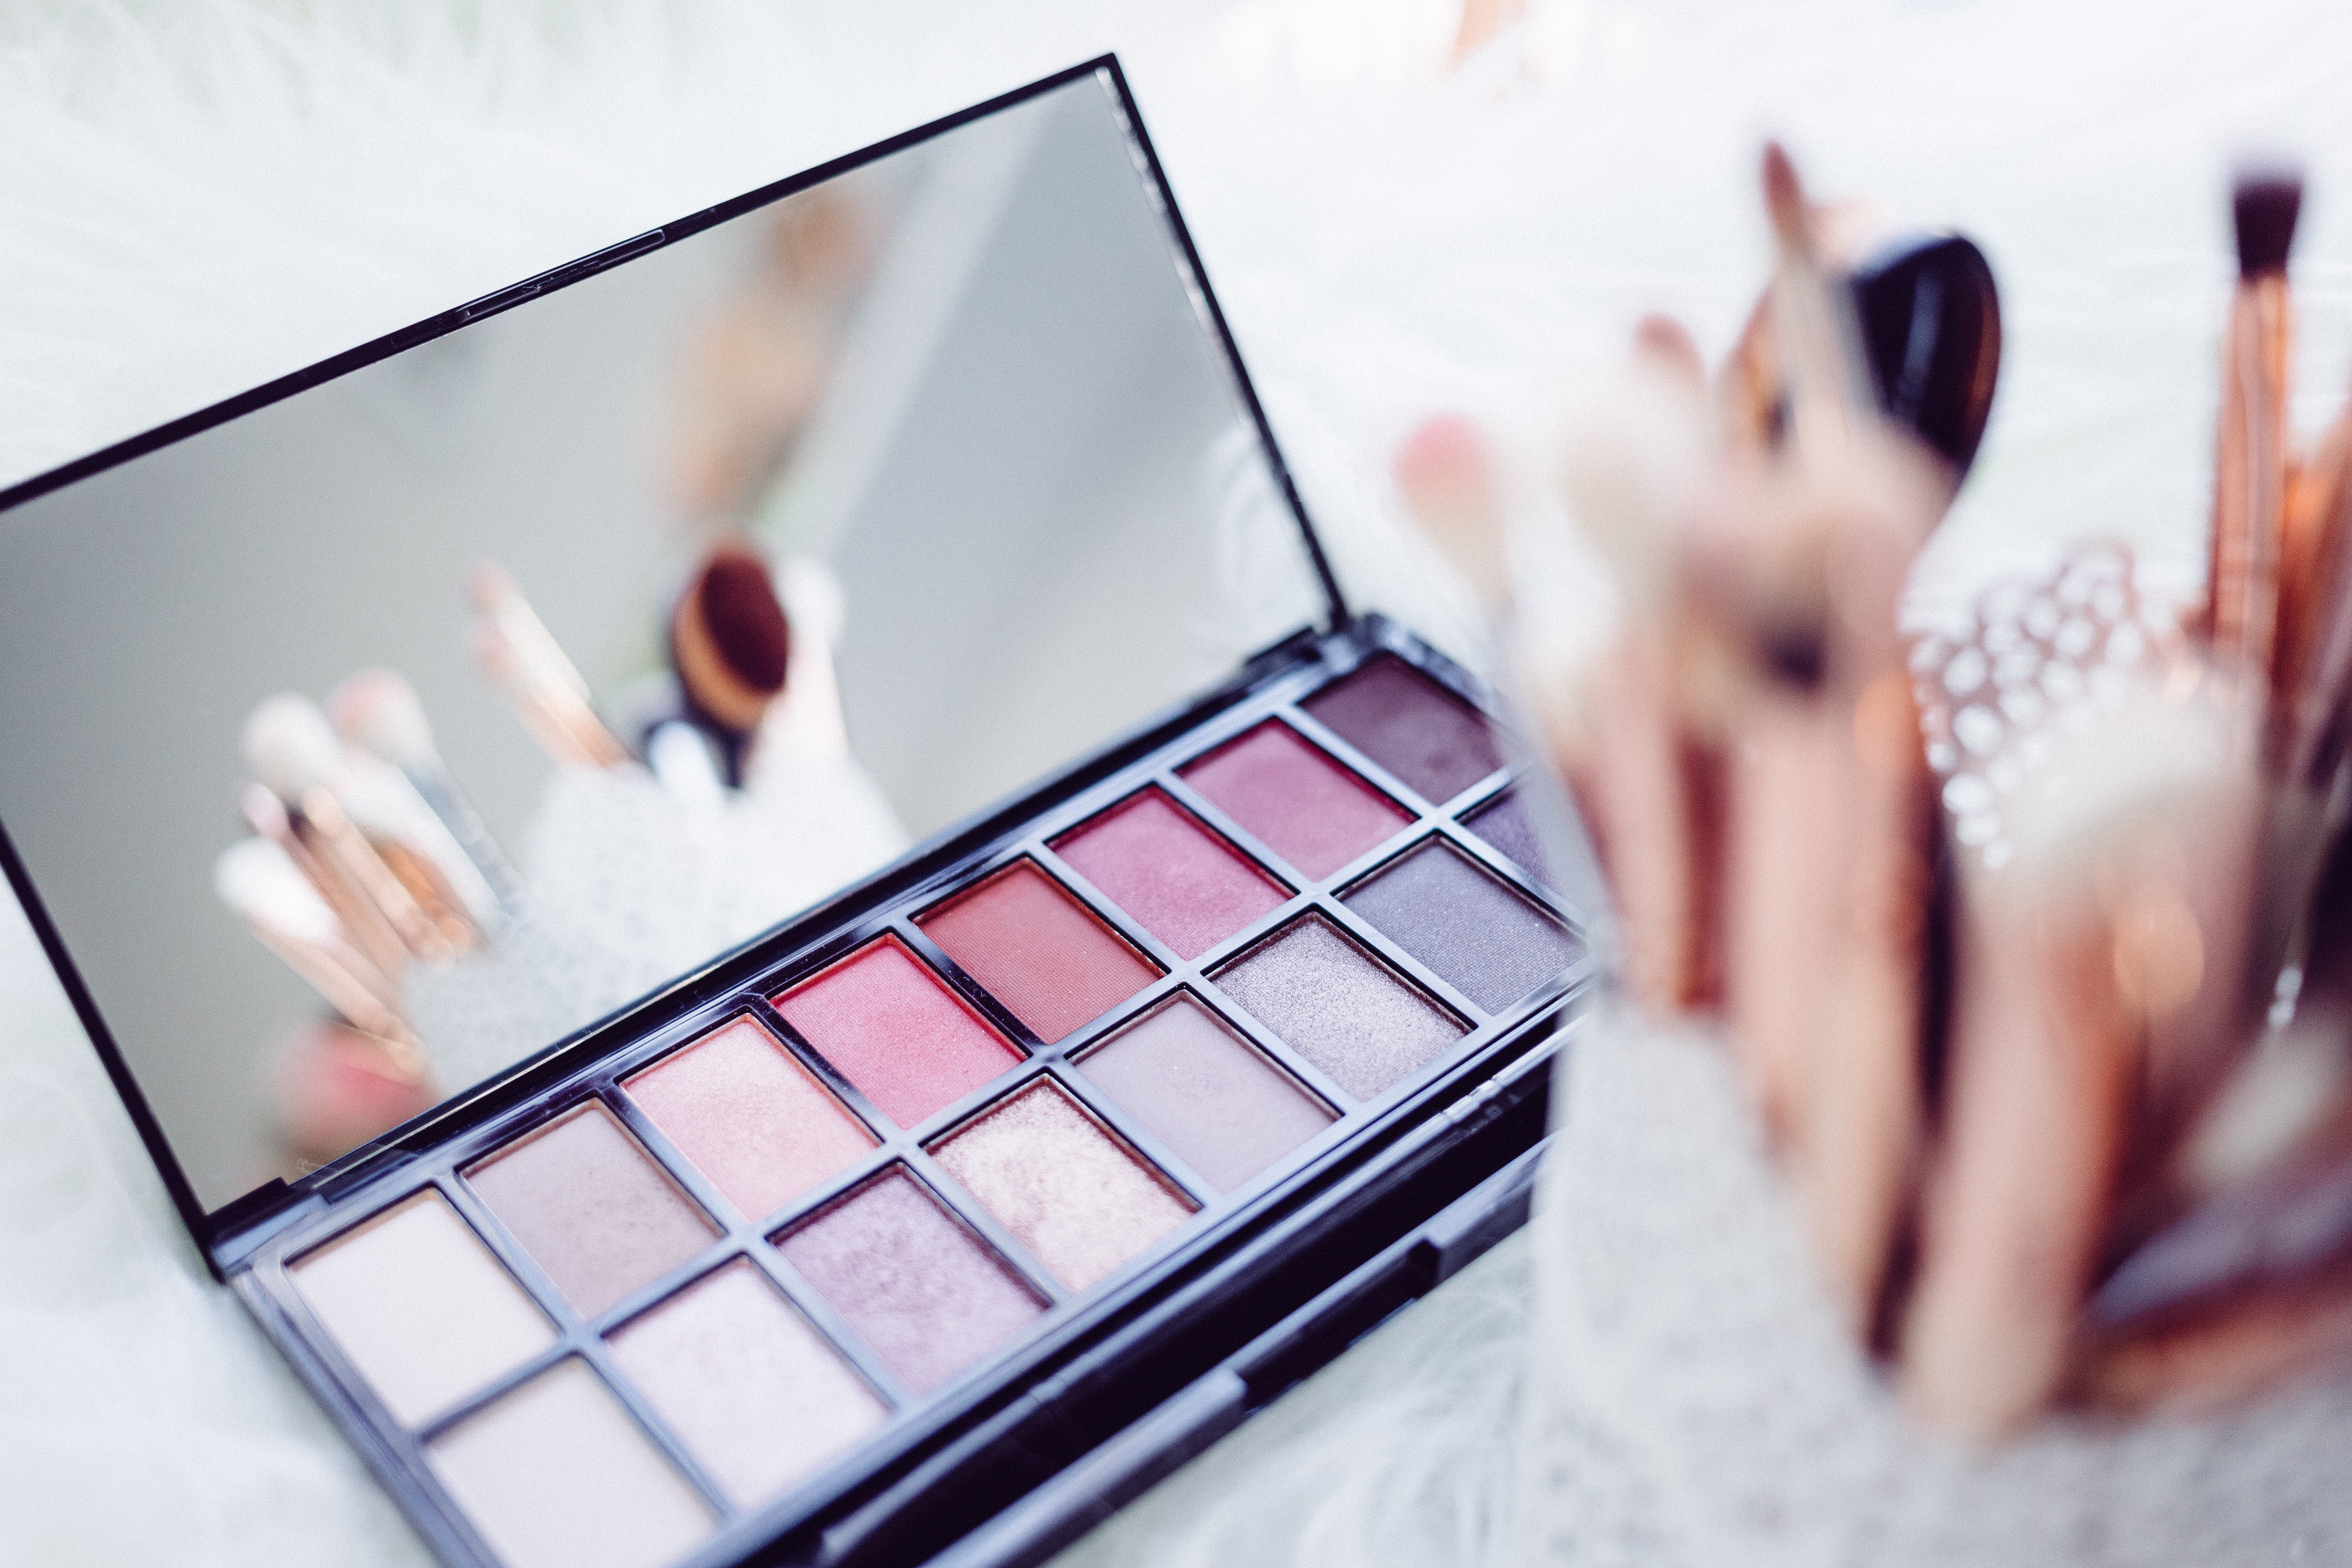 In-focus shot of a makeup palette and brushes.